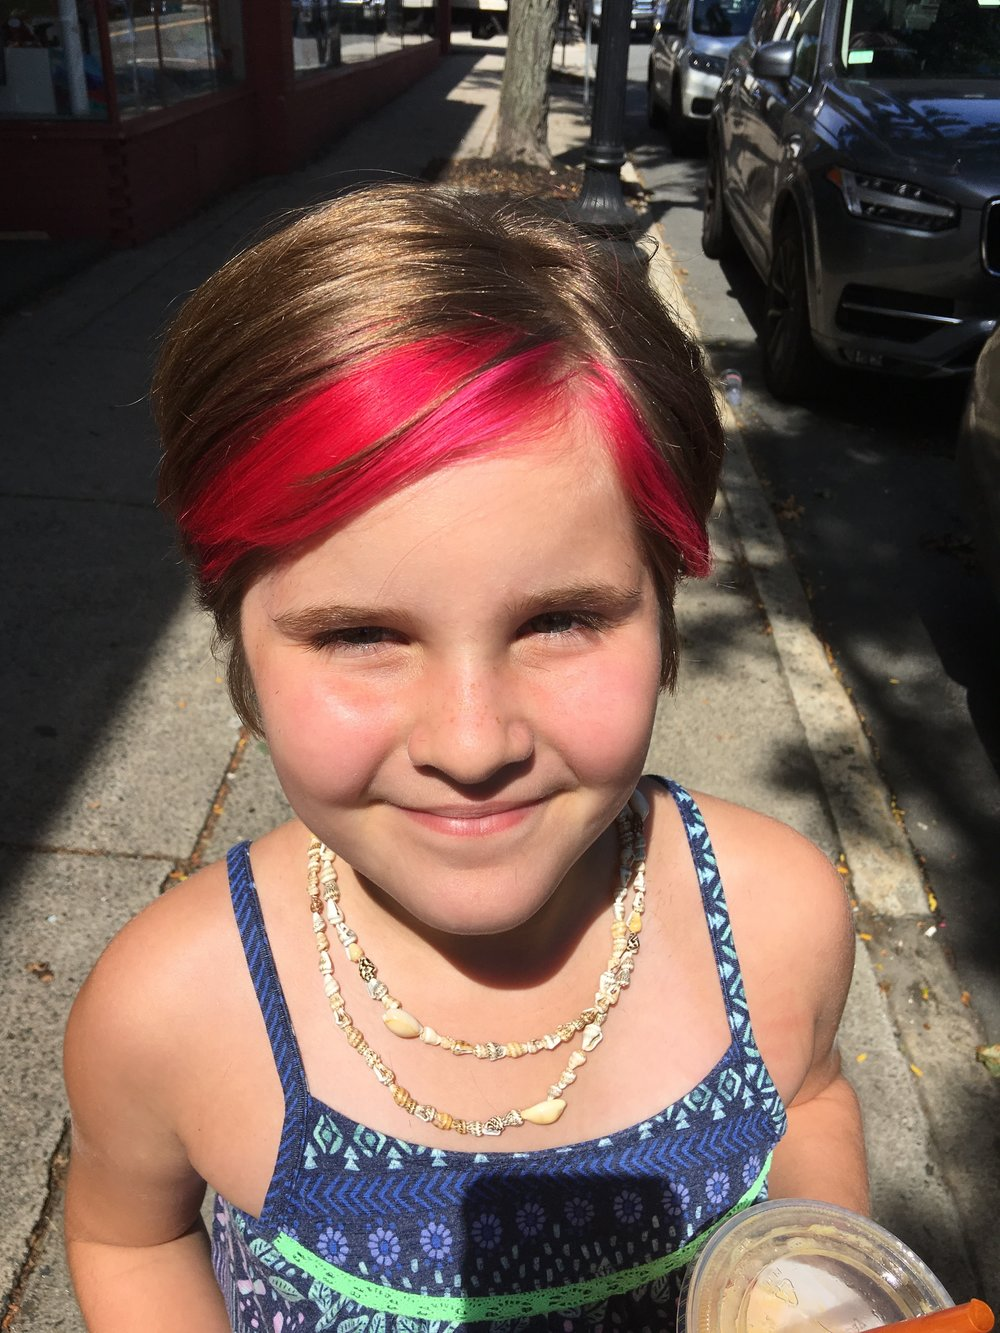 Recently I did what some parents would consider unthinkable. I dyed my 8 year-old daughter's hair pink.  -